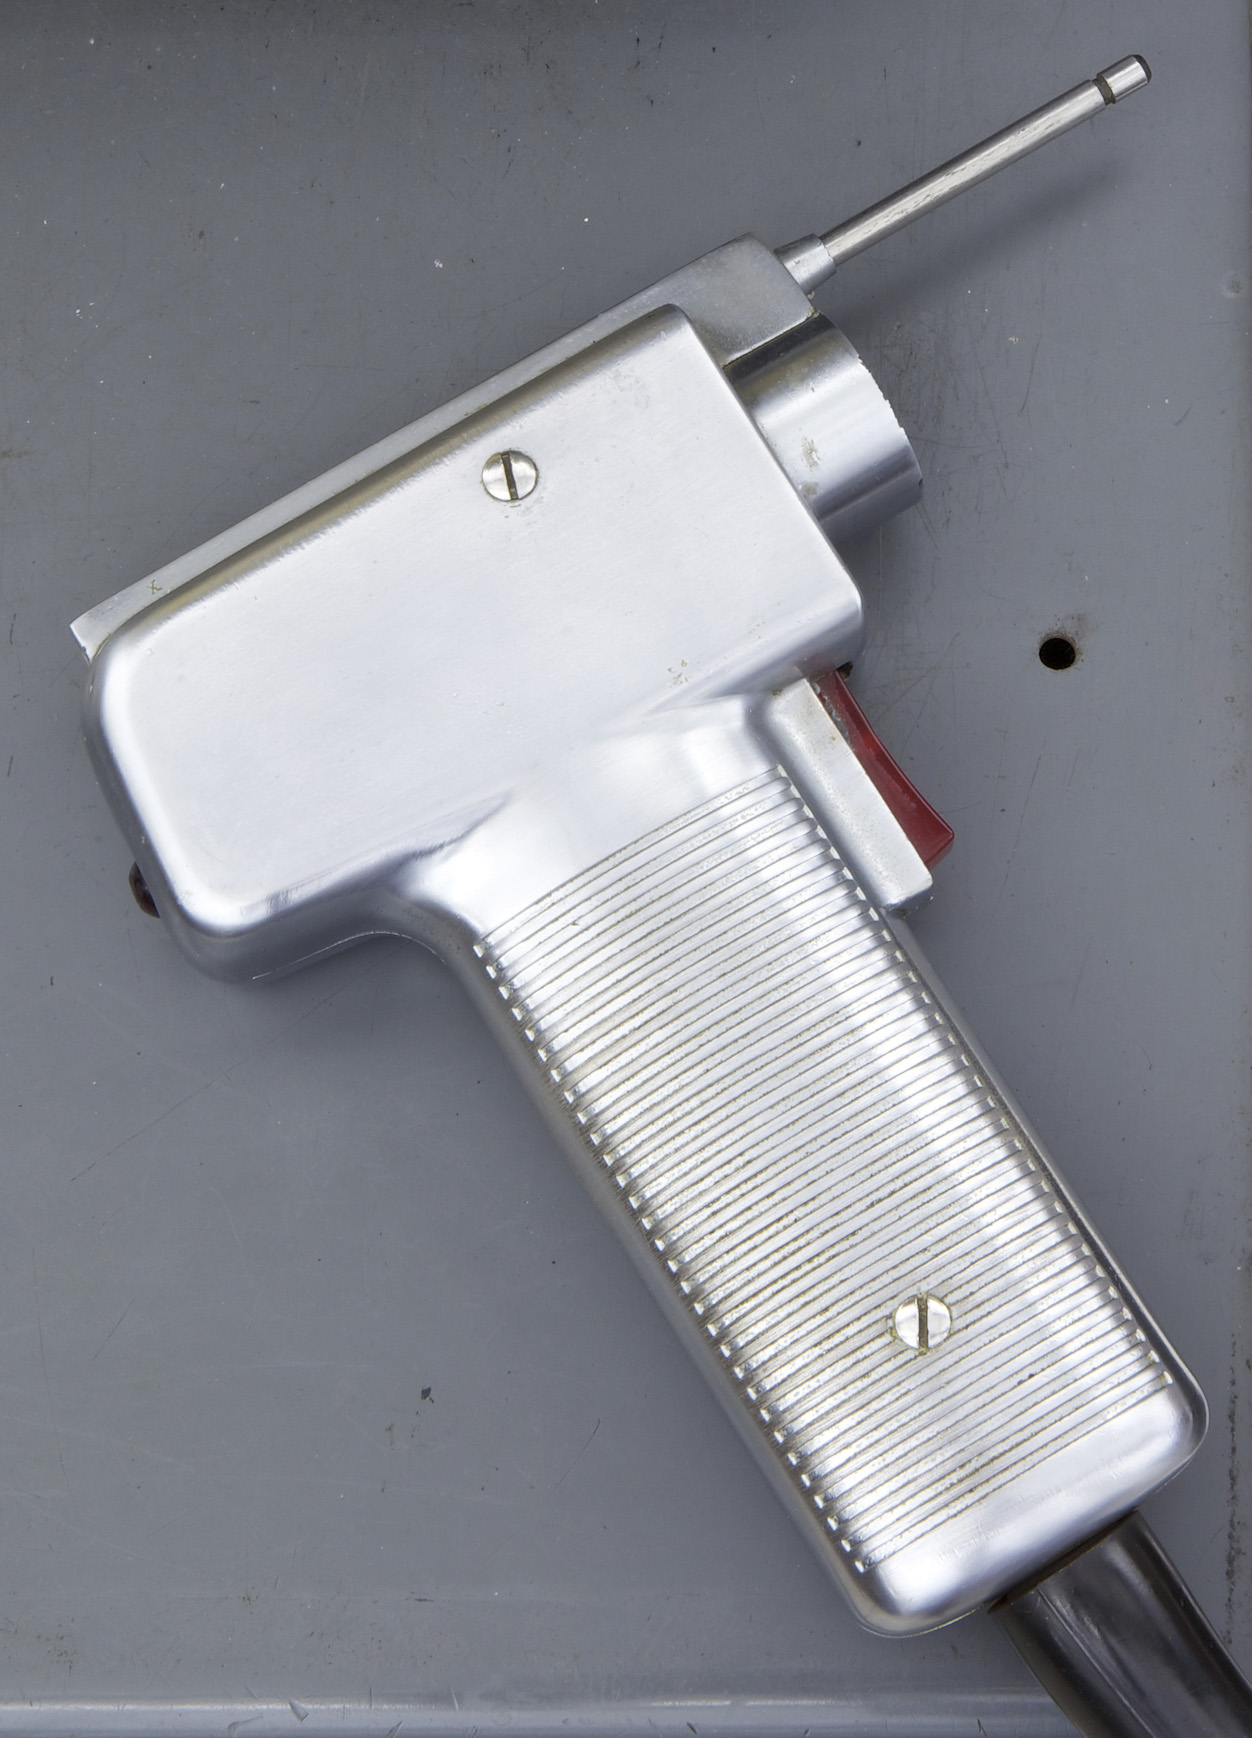 Lightgun - image courtesy of the Computer History Museum